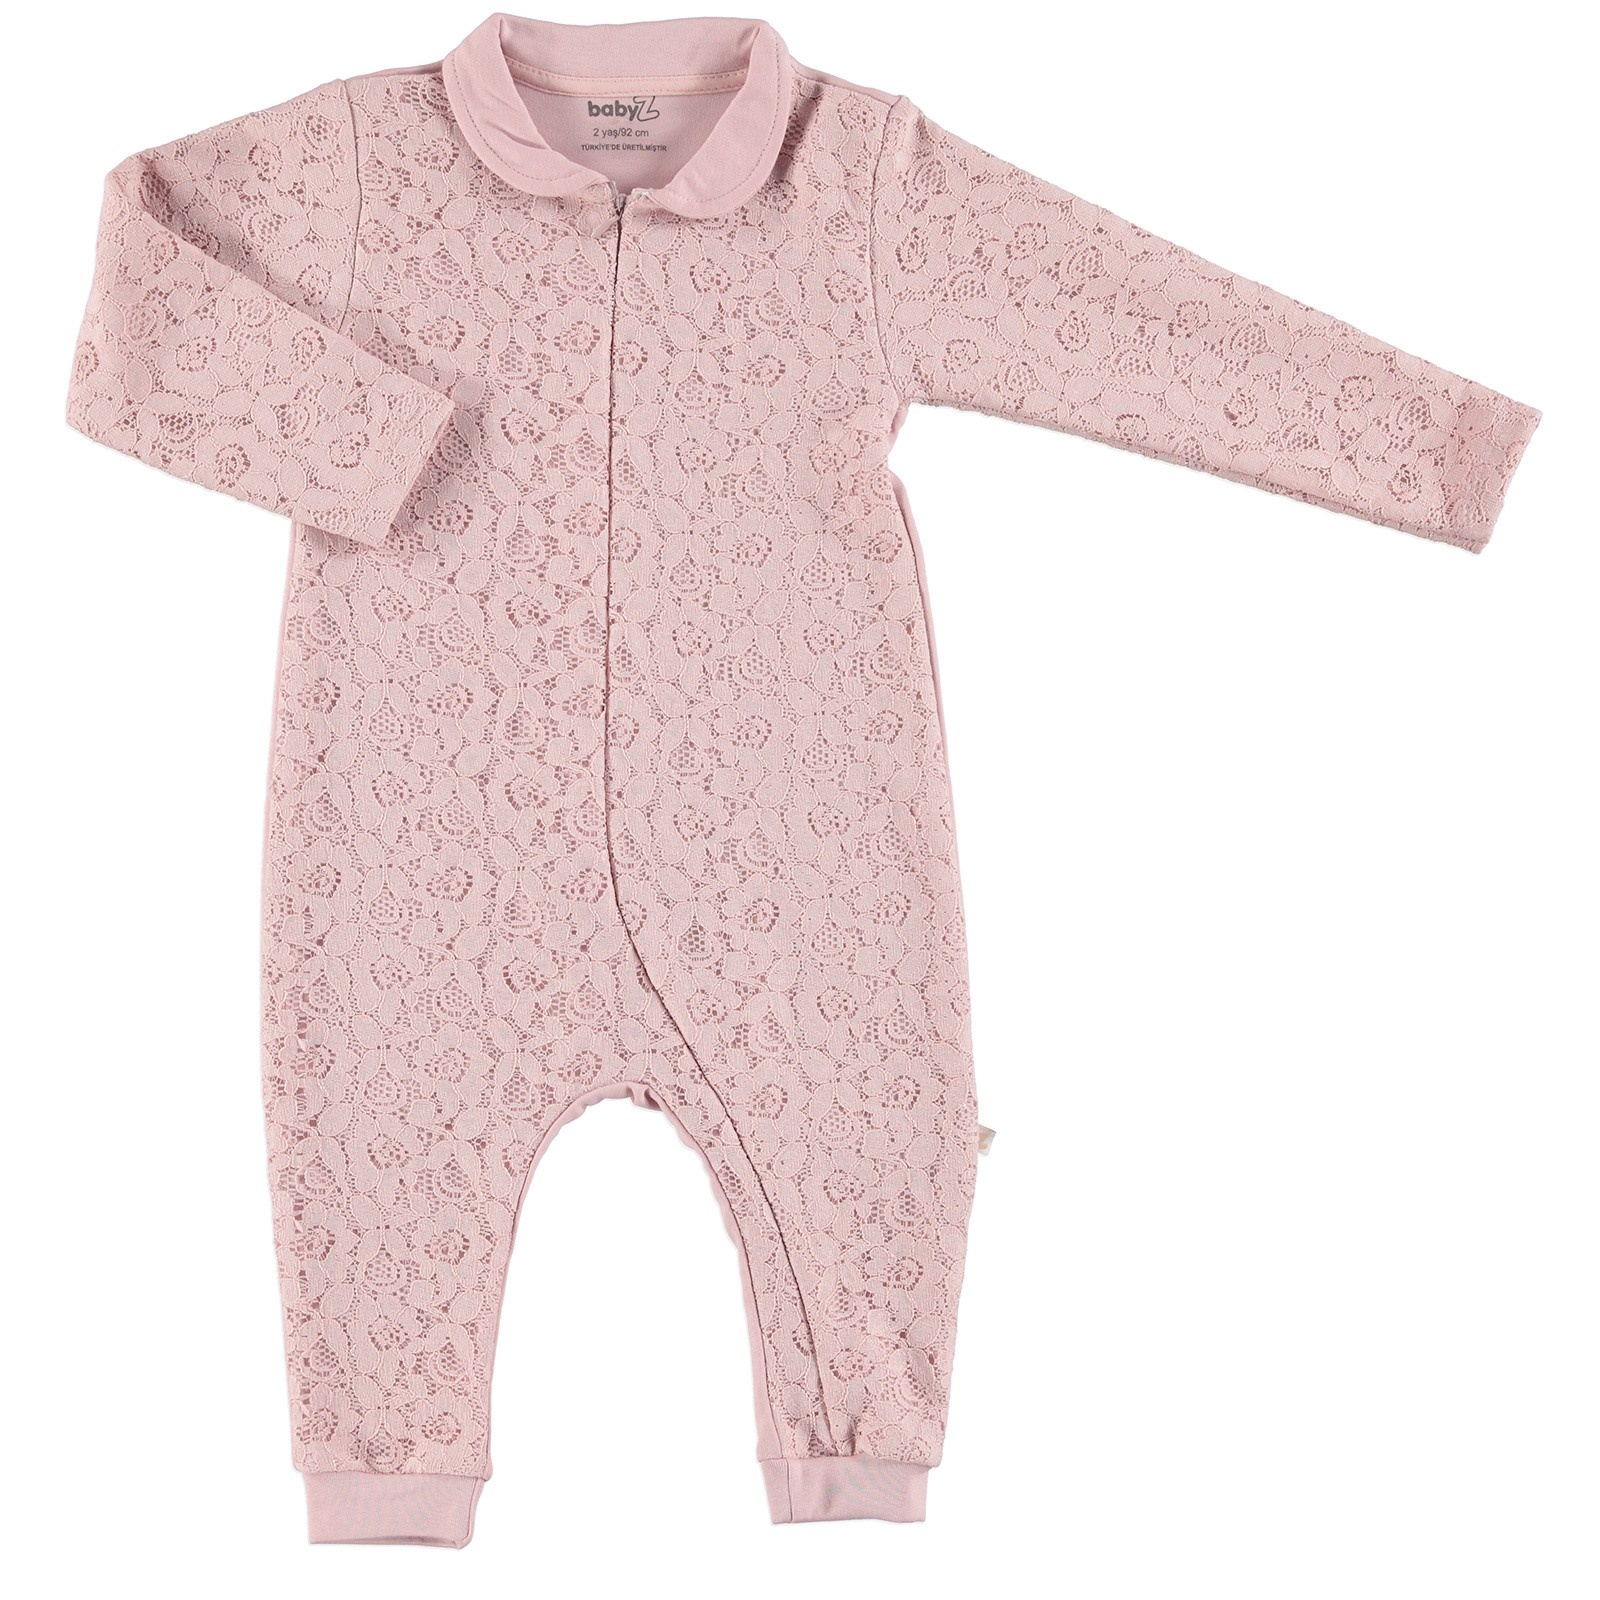 Ebebek BabyZ Baby Lacy Detail Zippered Footless Romper